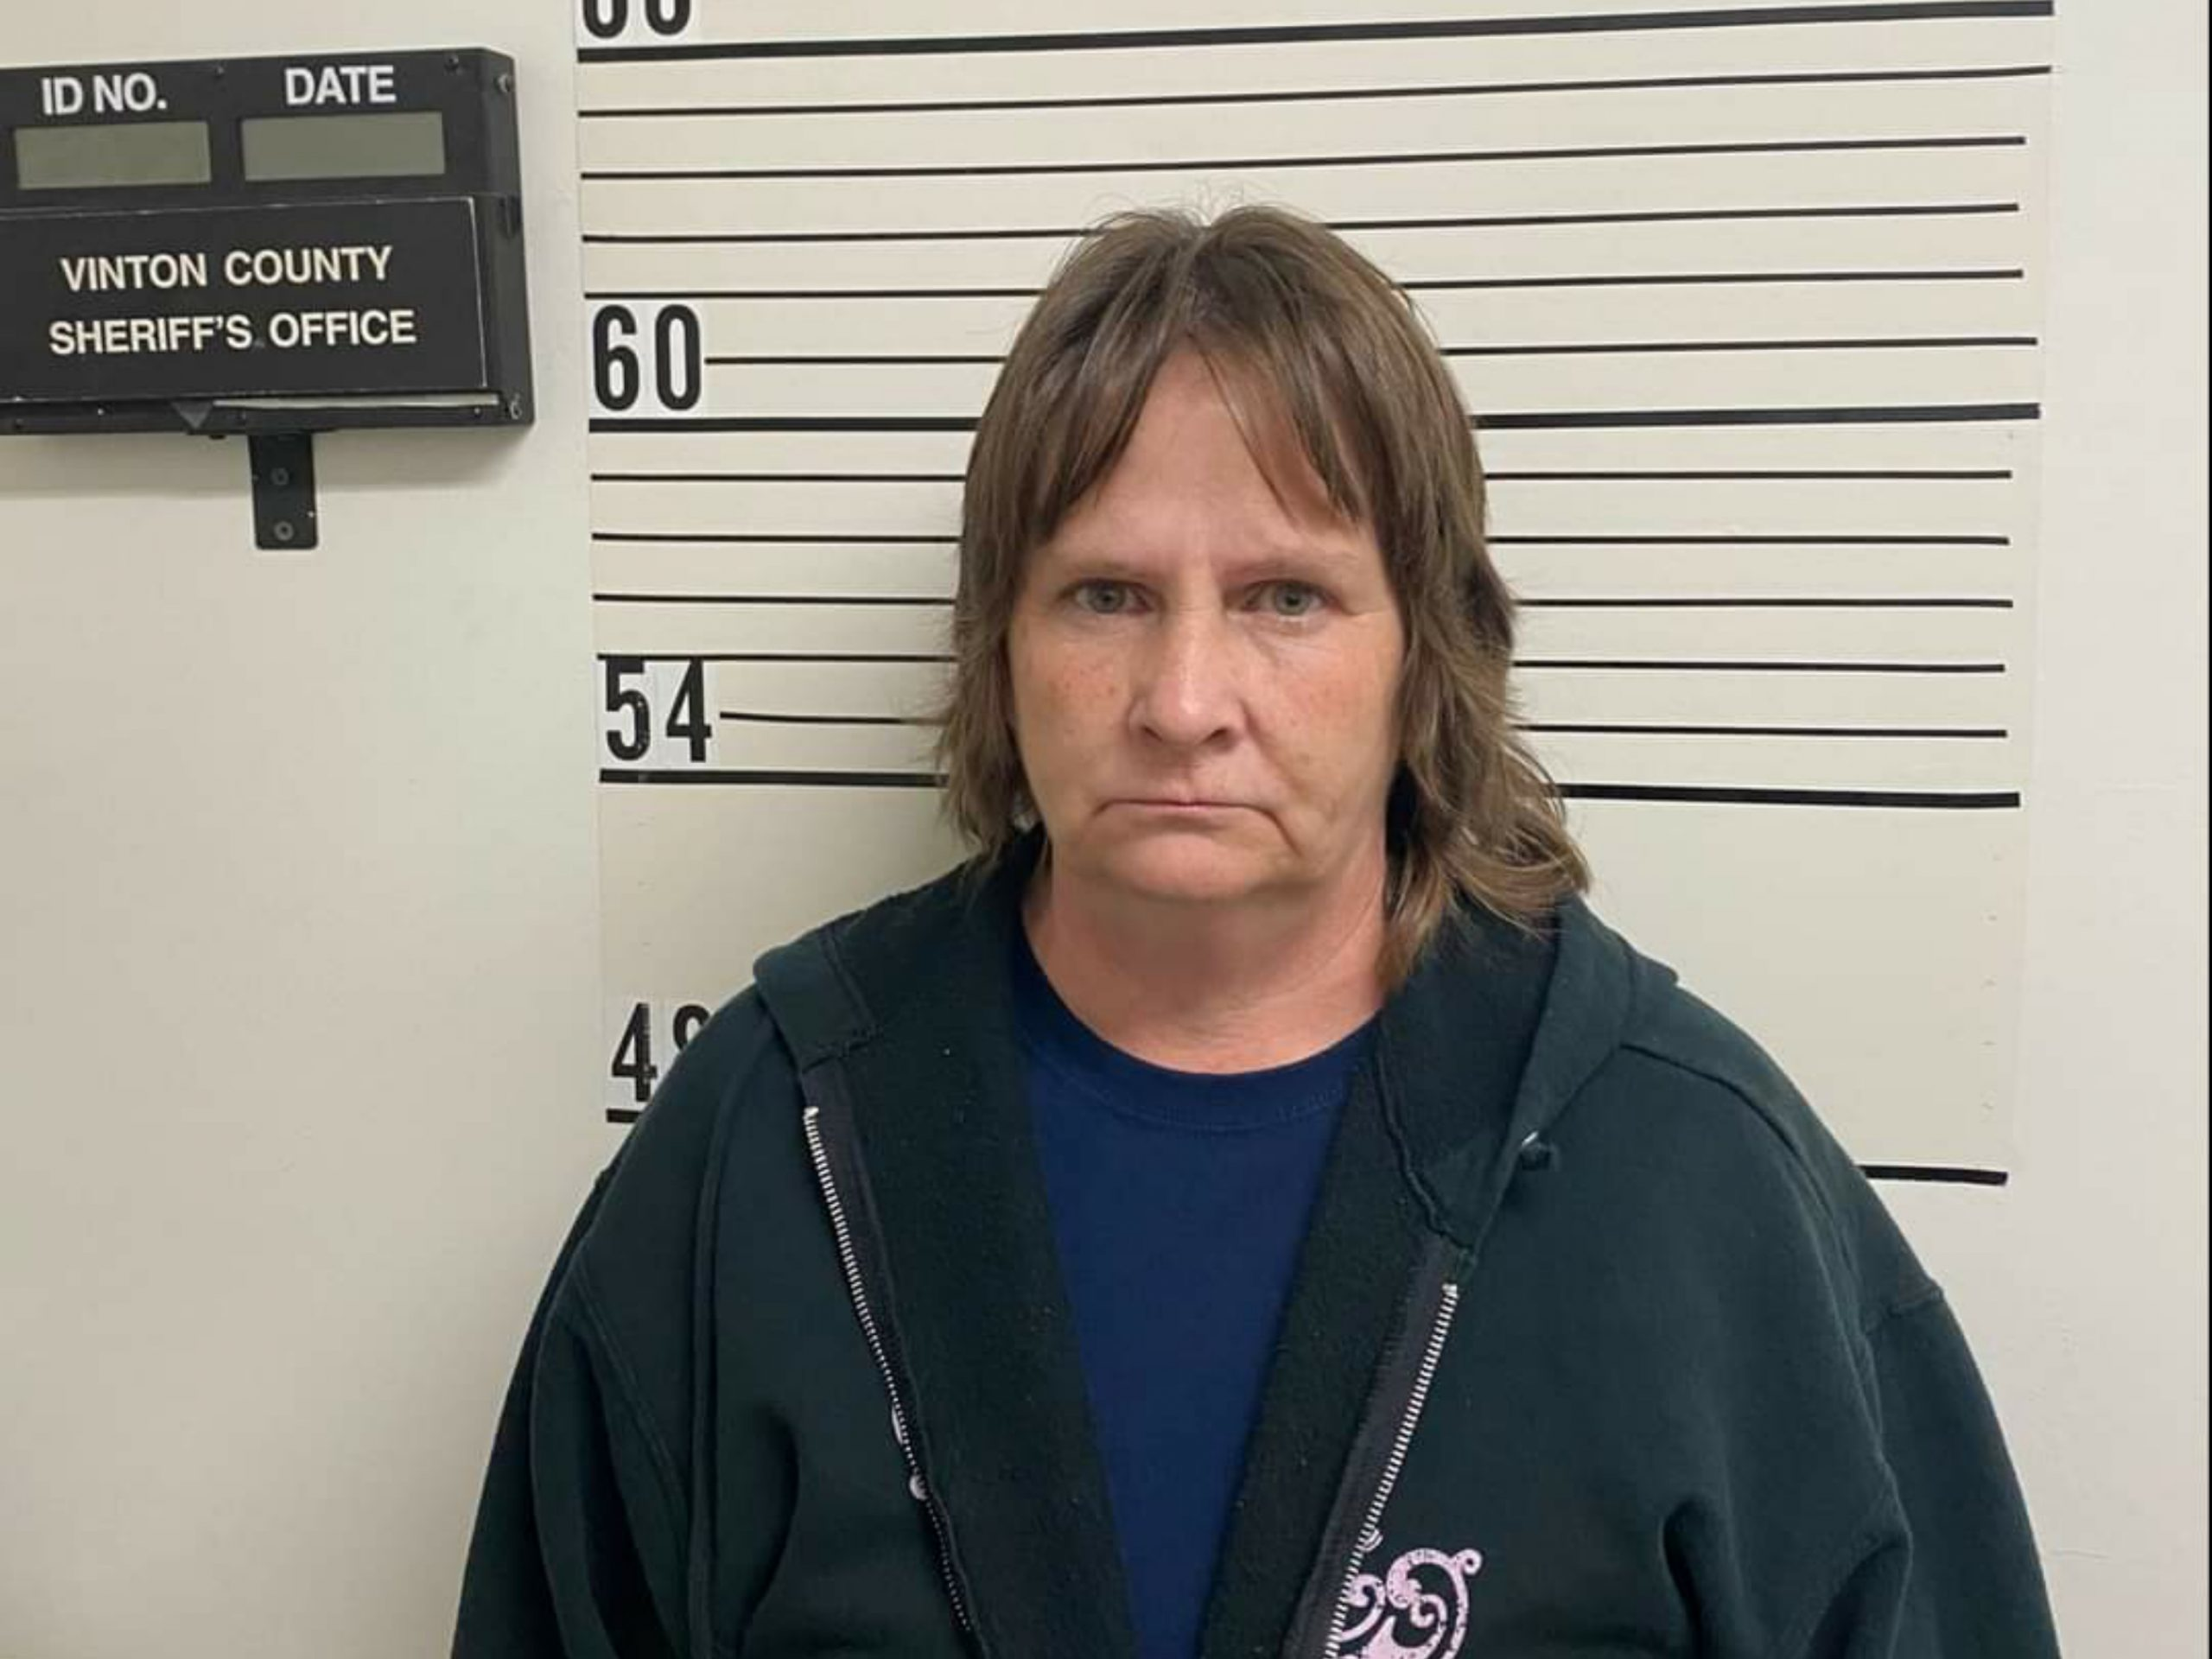 Vinton County Arrests Two People Who Were Inside Home